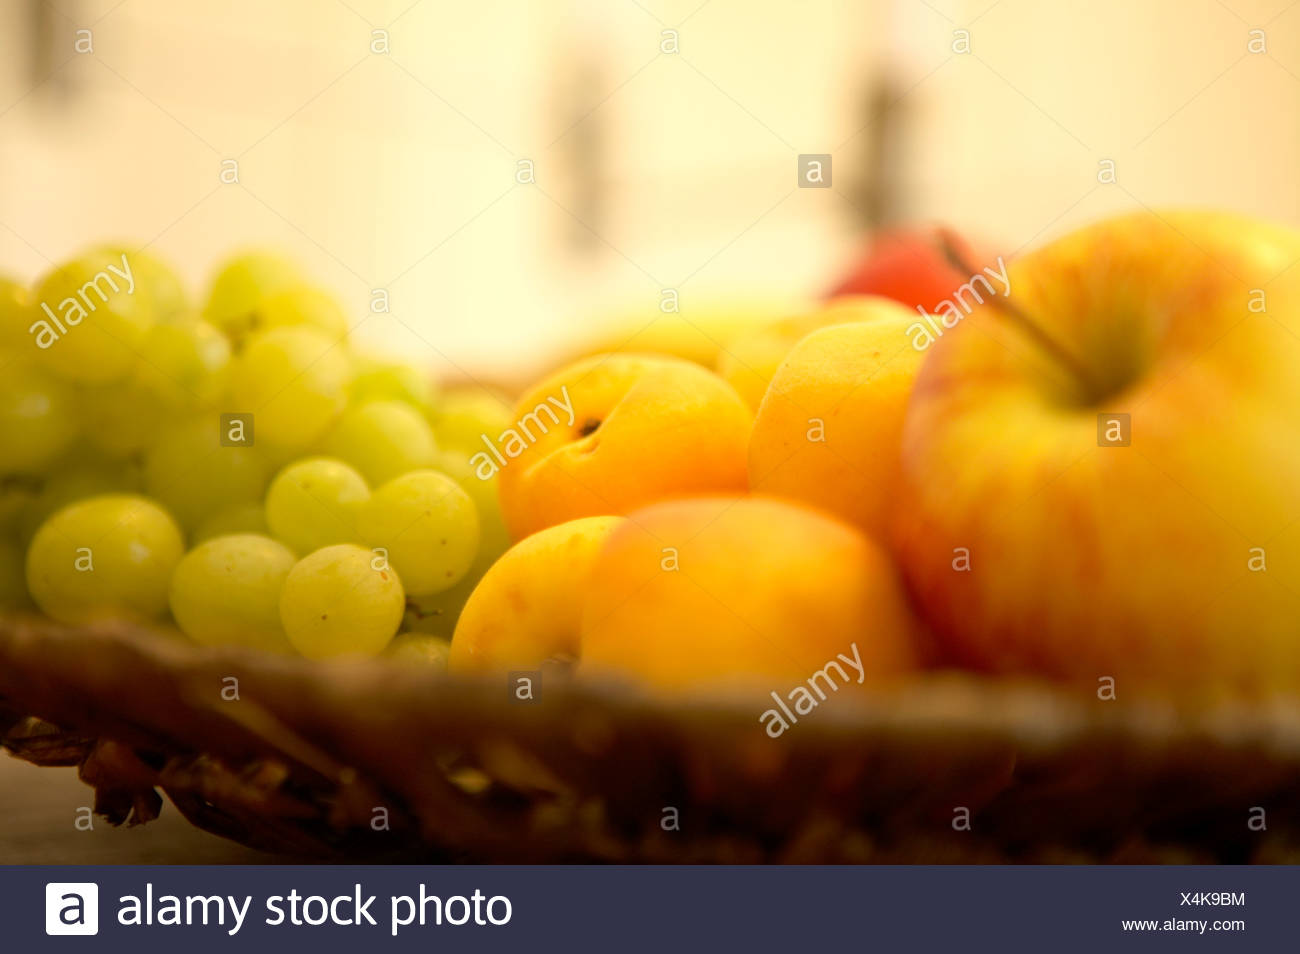 A basket of fruit on a table, close-up - Stock Image